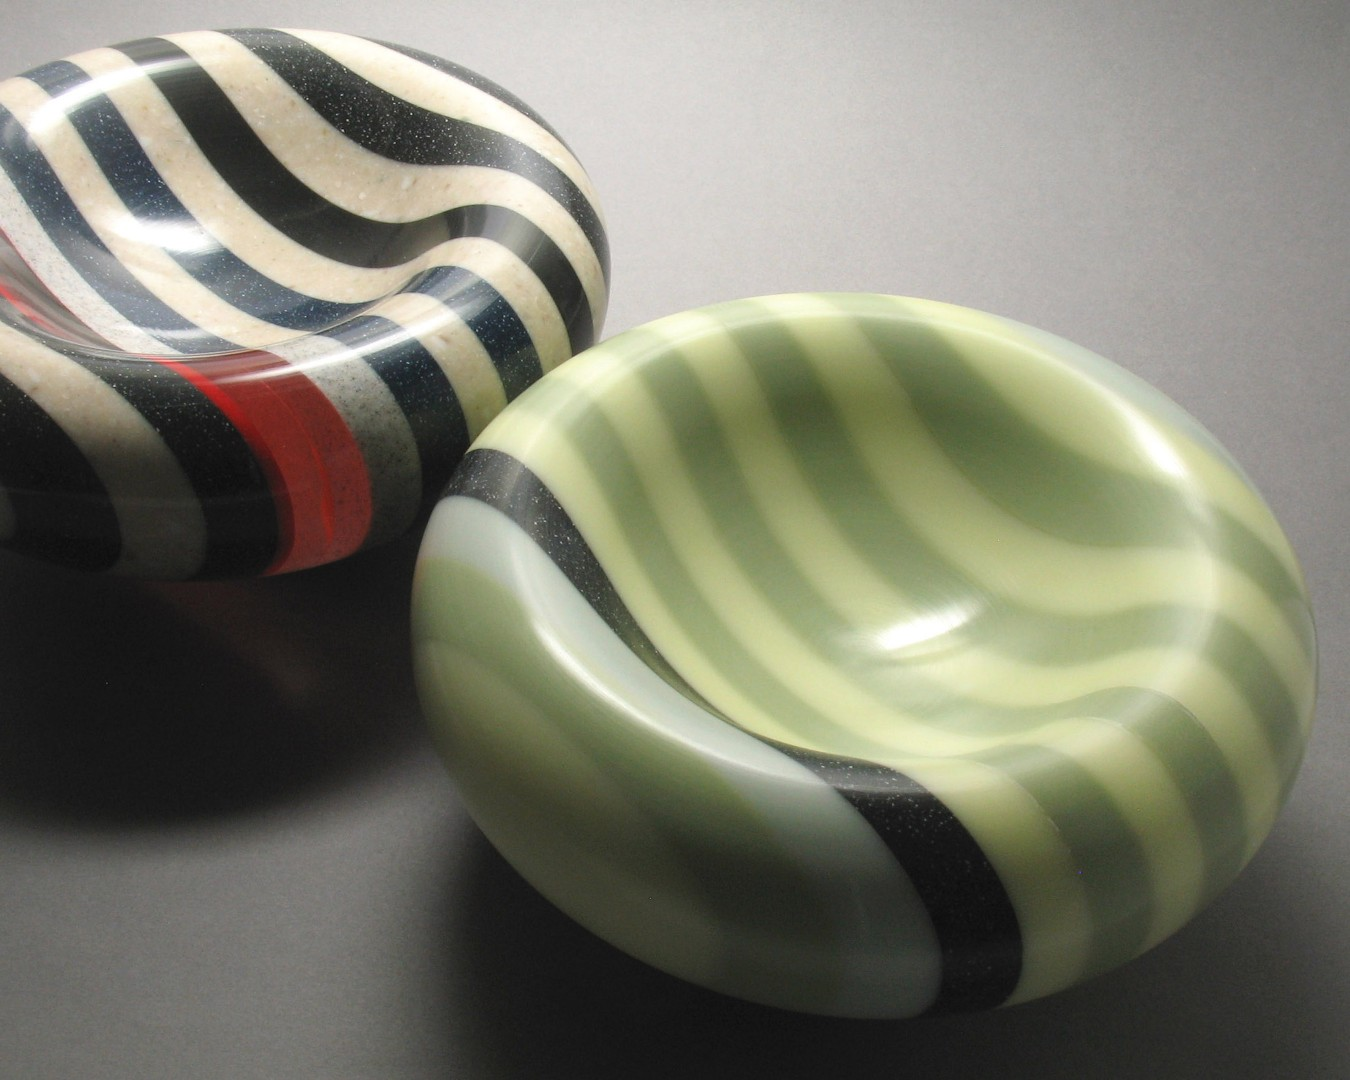 Colourful Countdown to Christmas Graham Lester Corian Bowls